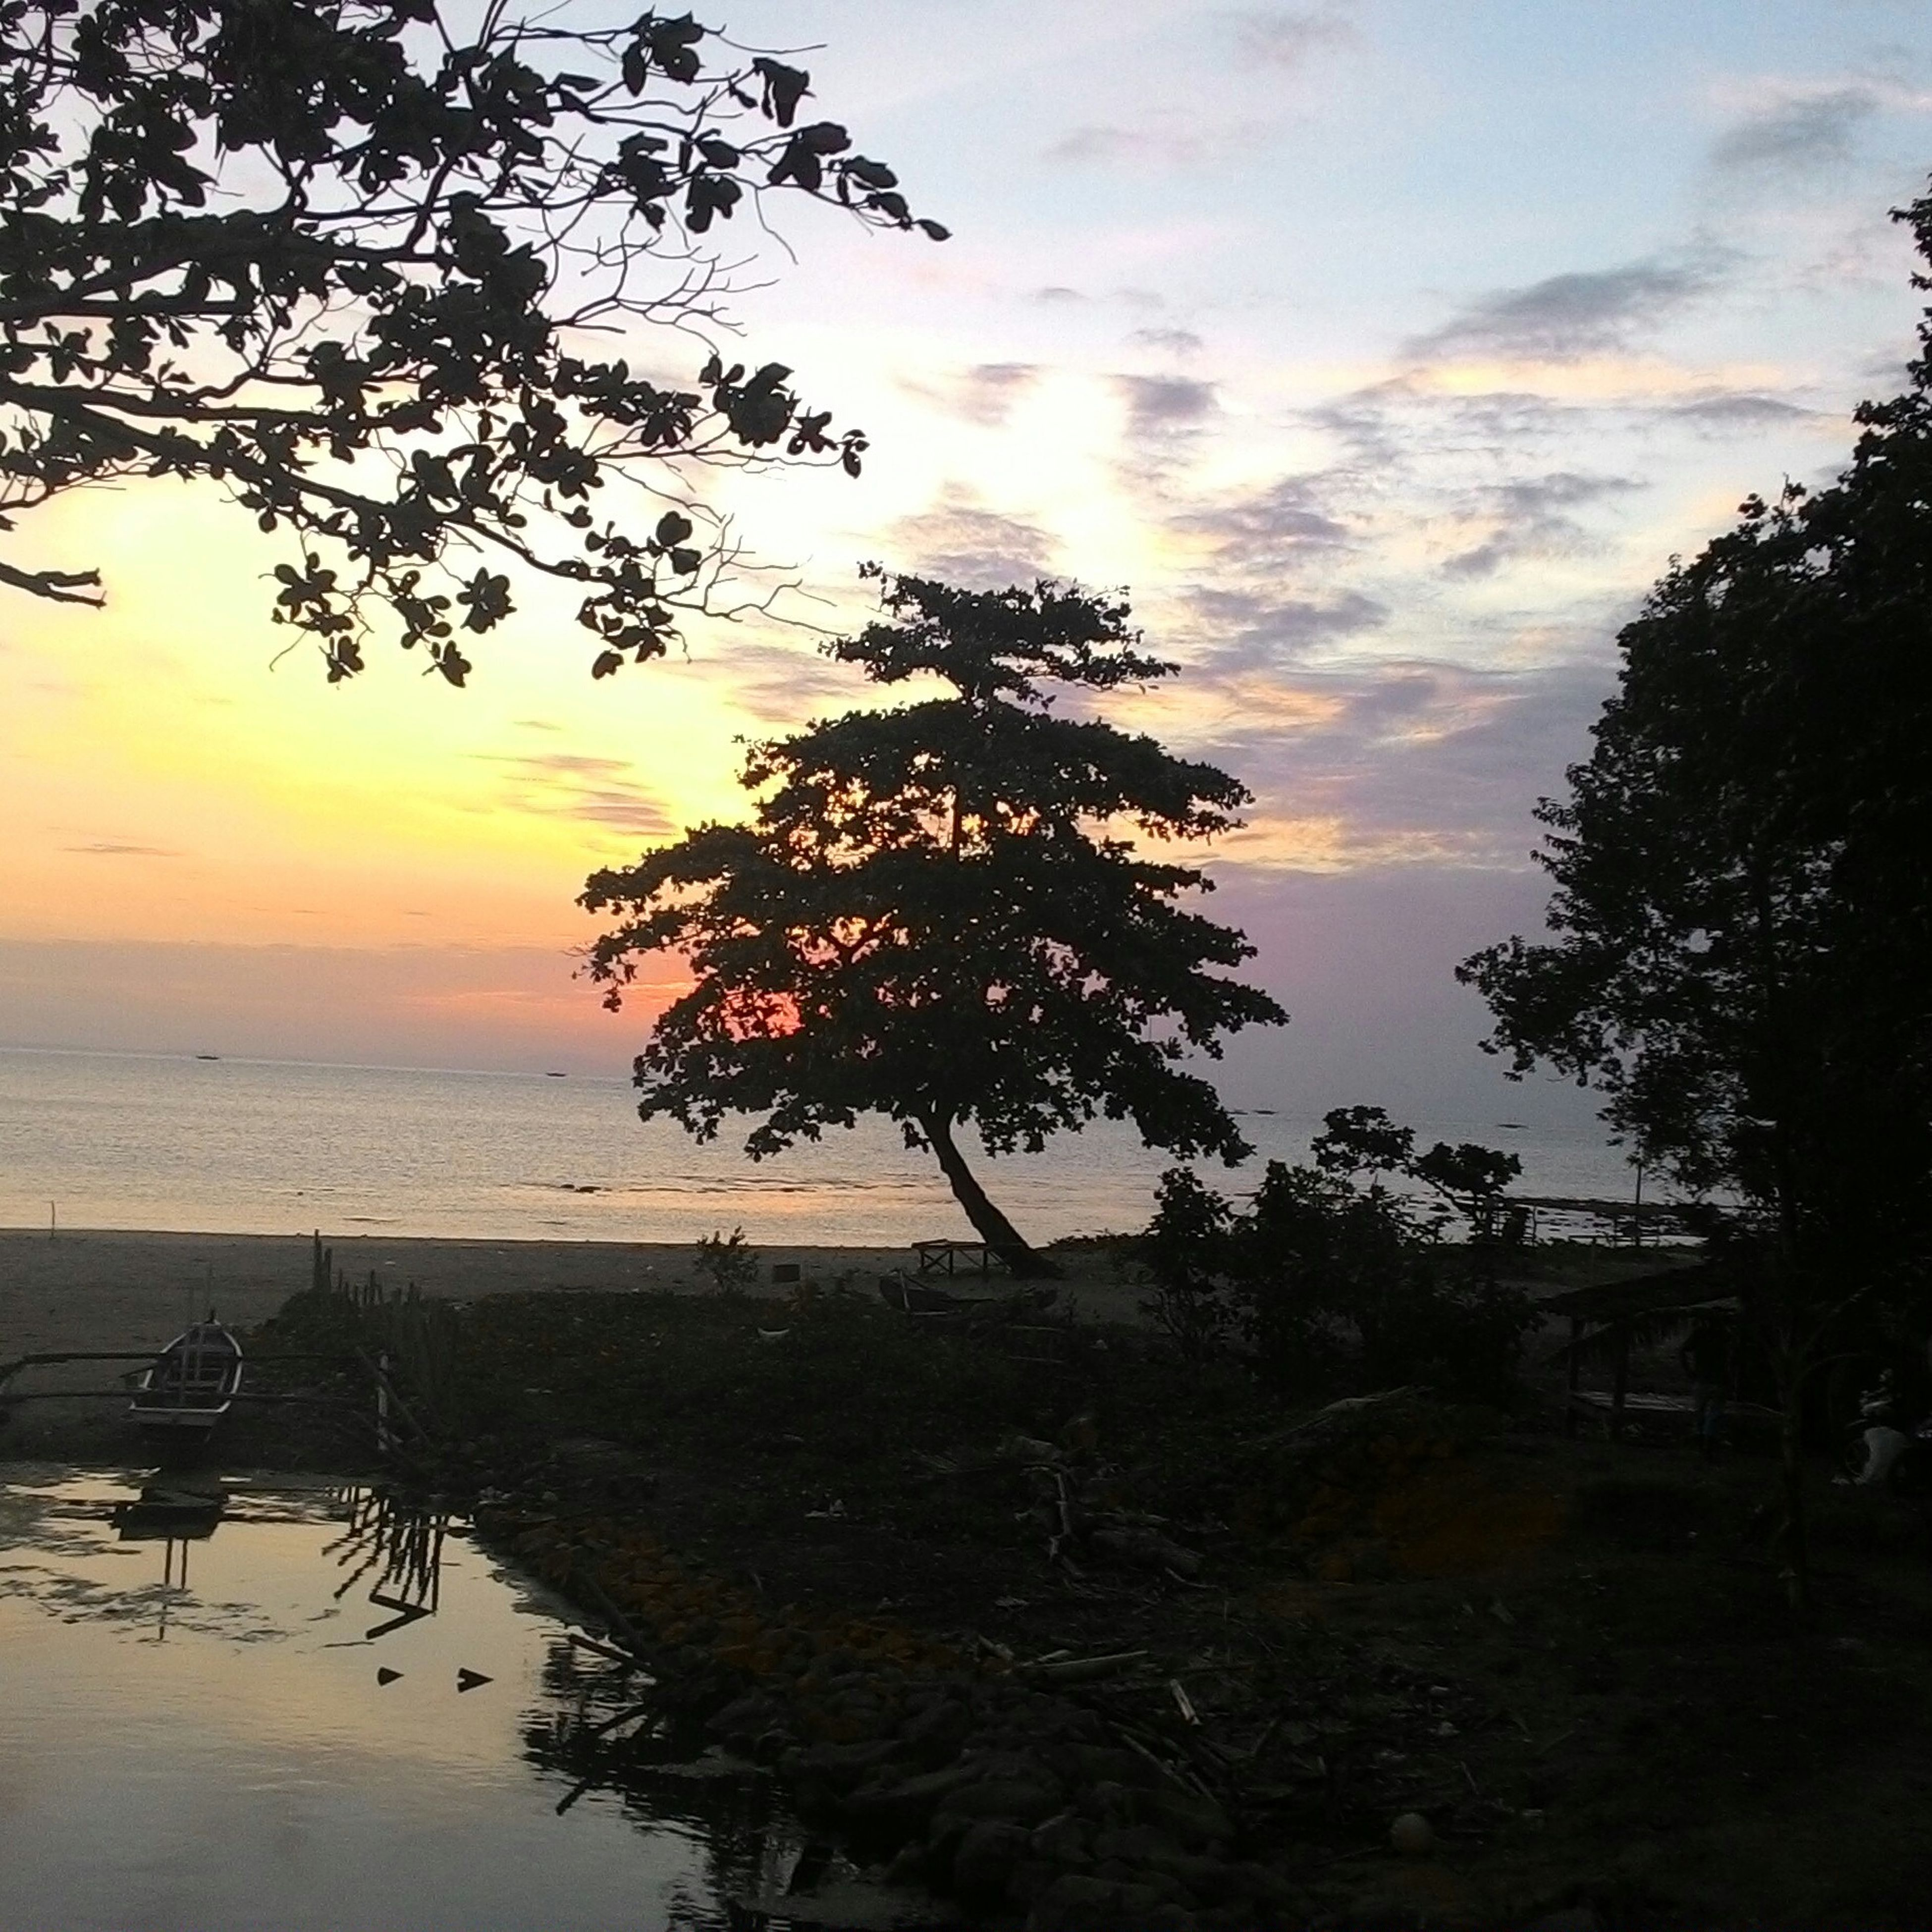 tree, sunset, sky, tranquility, tranquil scene, scenics, silhouette, water, beauty in nature, sea, nature, horizon over water, branch, cloud - sky, idyllic, beach, growth, tree trunk, shore, dusk